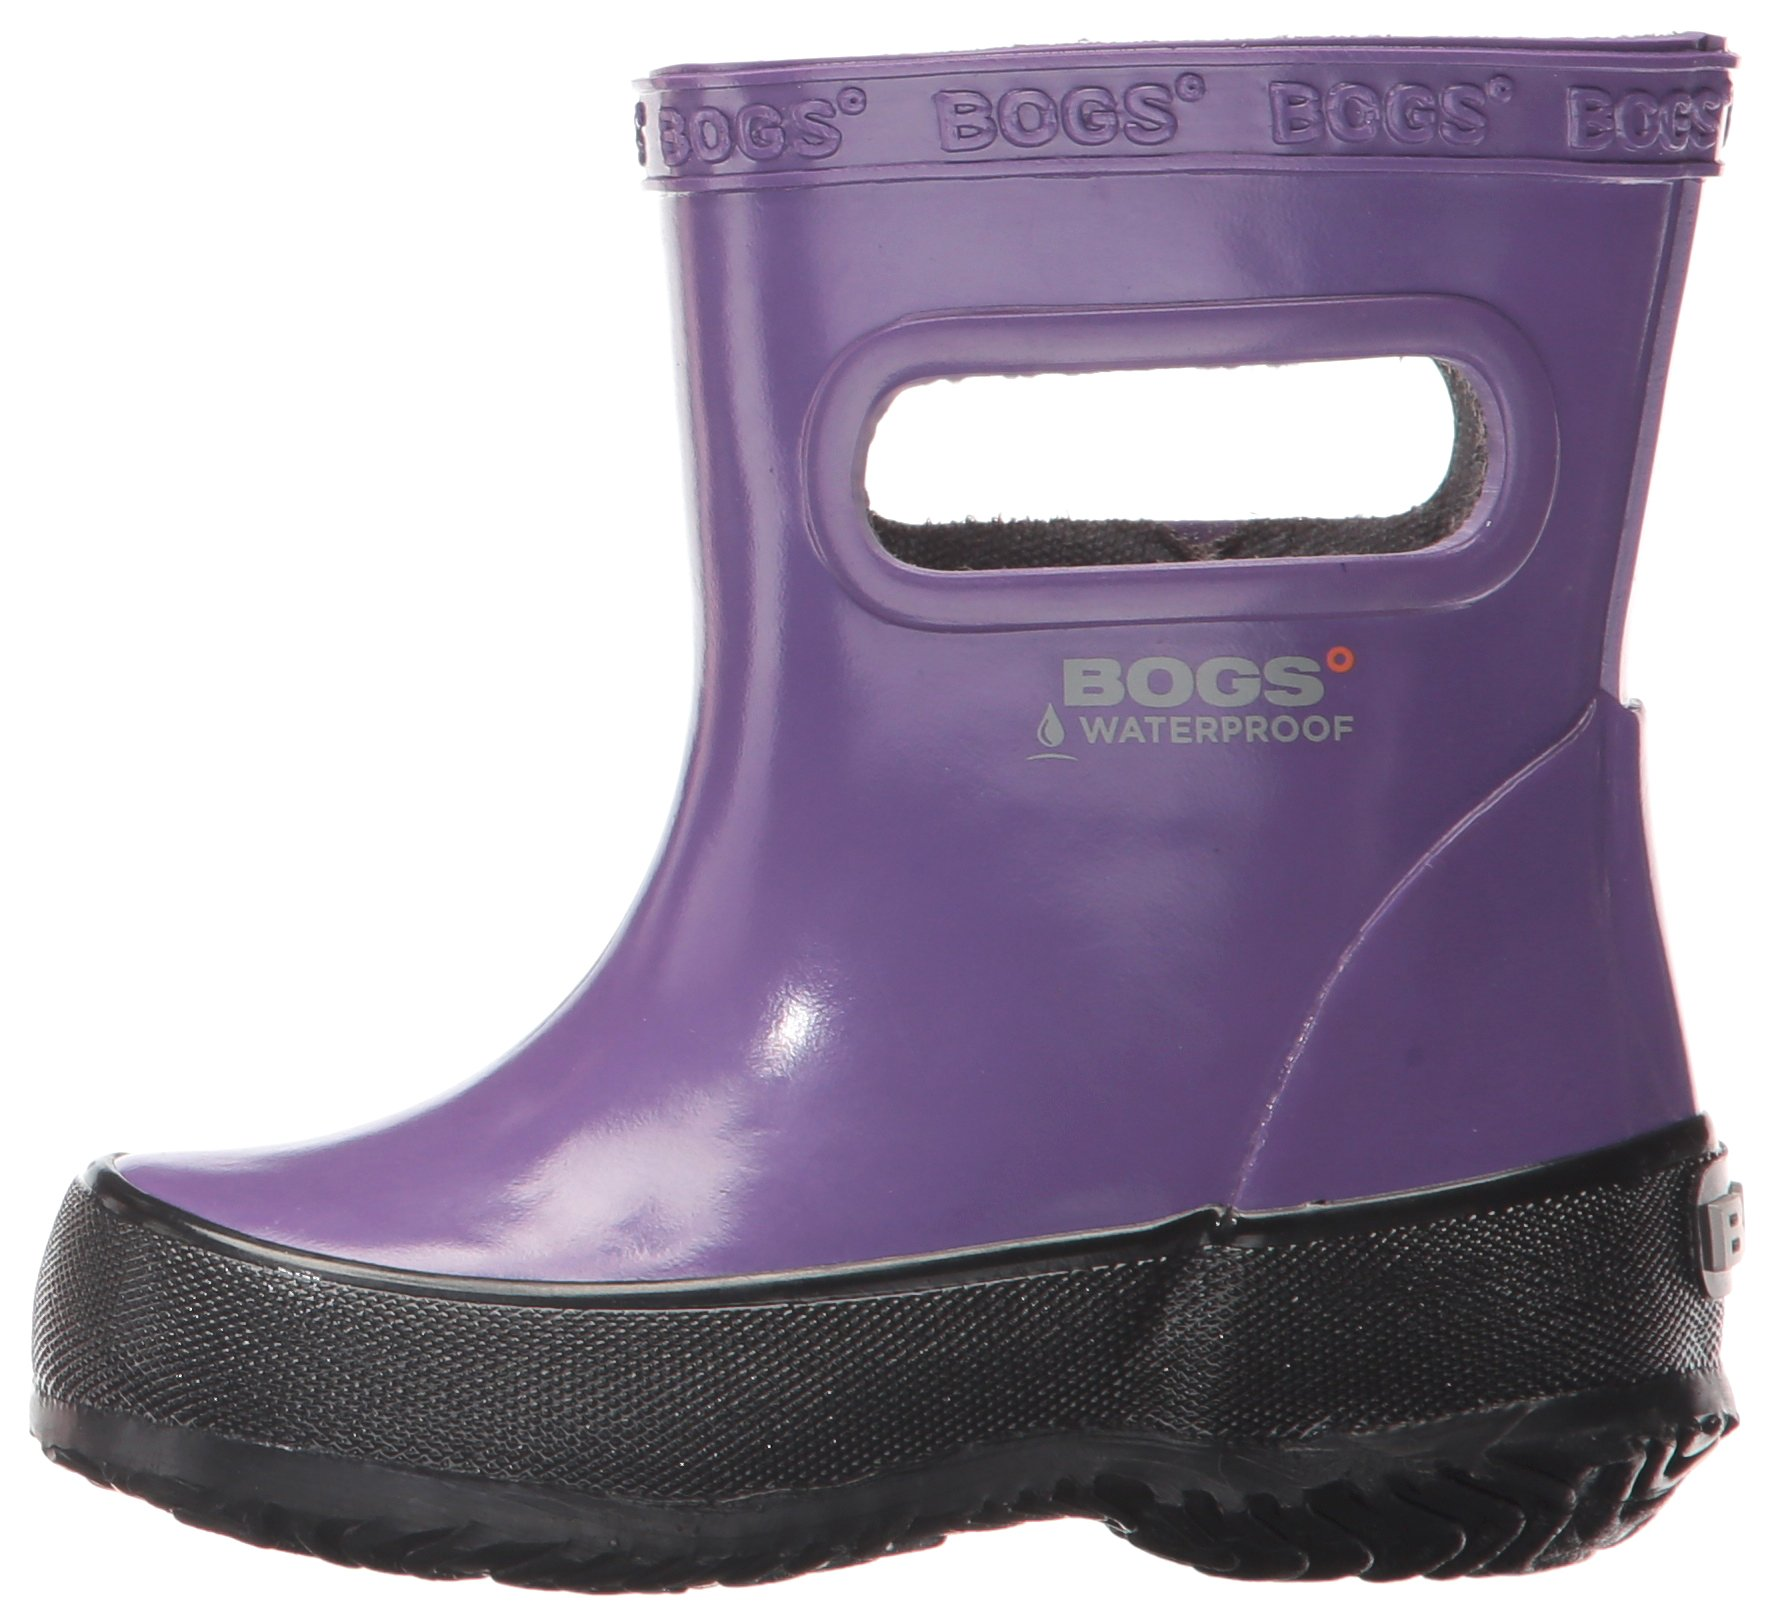 6feb6186e Bogs Kids' Skipper Waterproof Rubber Rain Boot for Boys and Girls,Solid  Purple,5 M US Toddler - 72148K-542-542-PRPL-5 M US Big Kid < Boots <  Clothing, Shoes ...